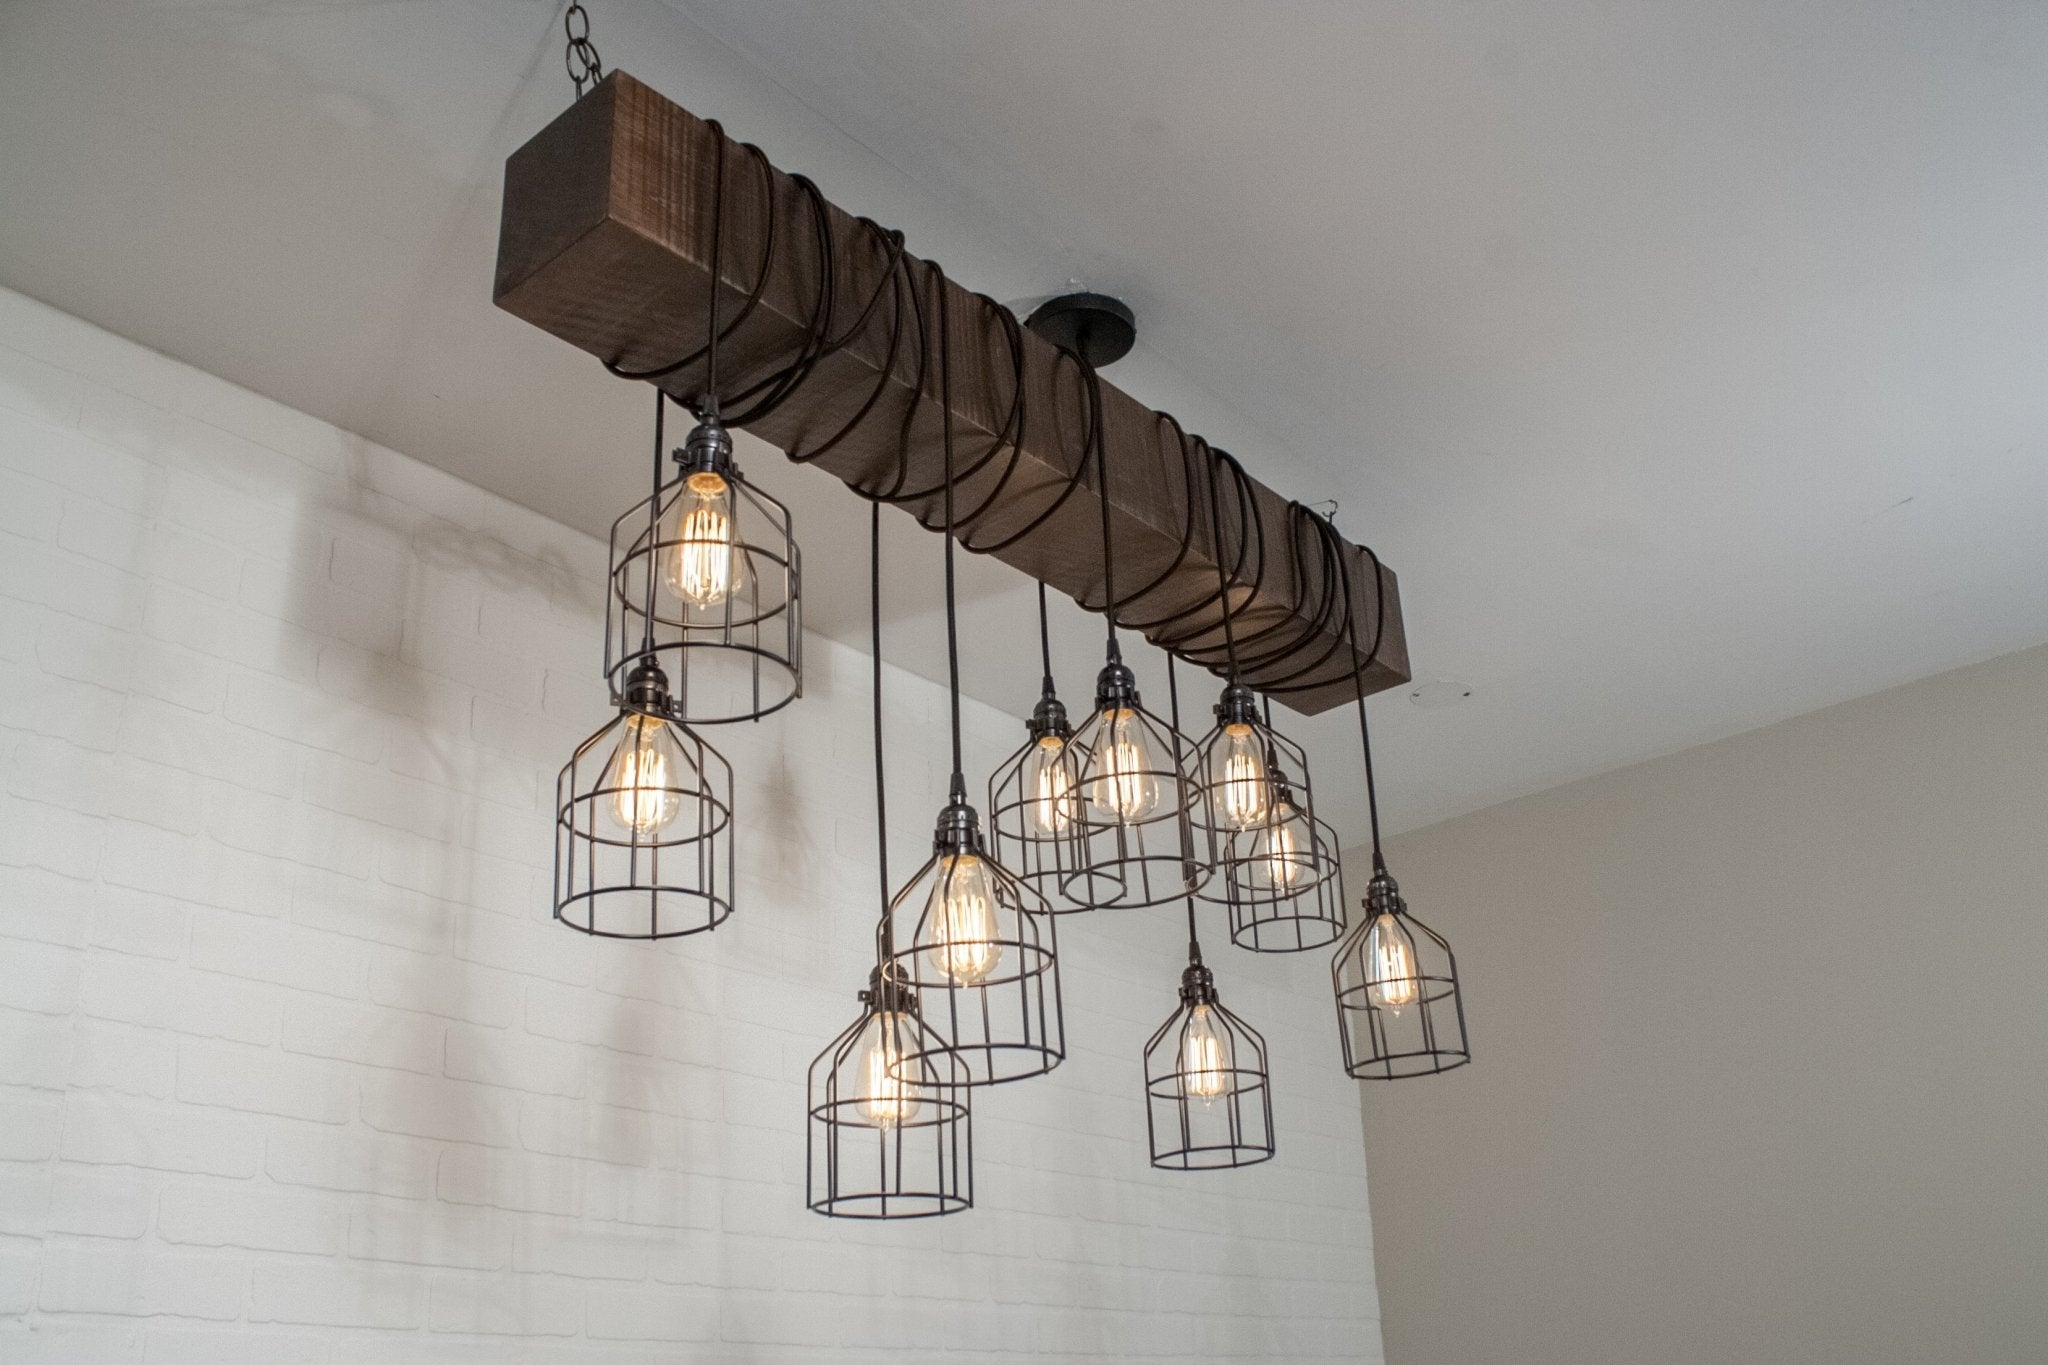 10 Pendant Wood Beam Light Fixture with Cages - Loewen Design Studios